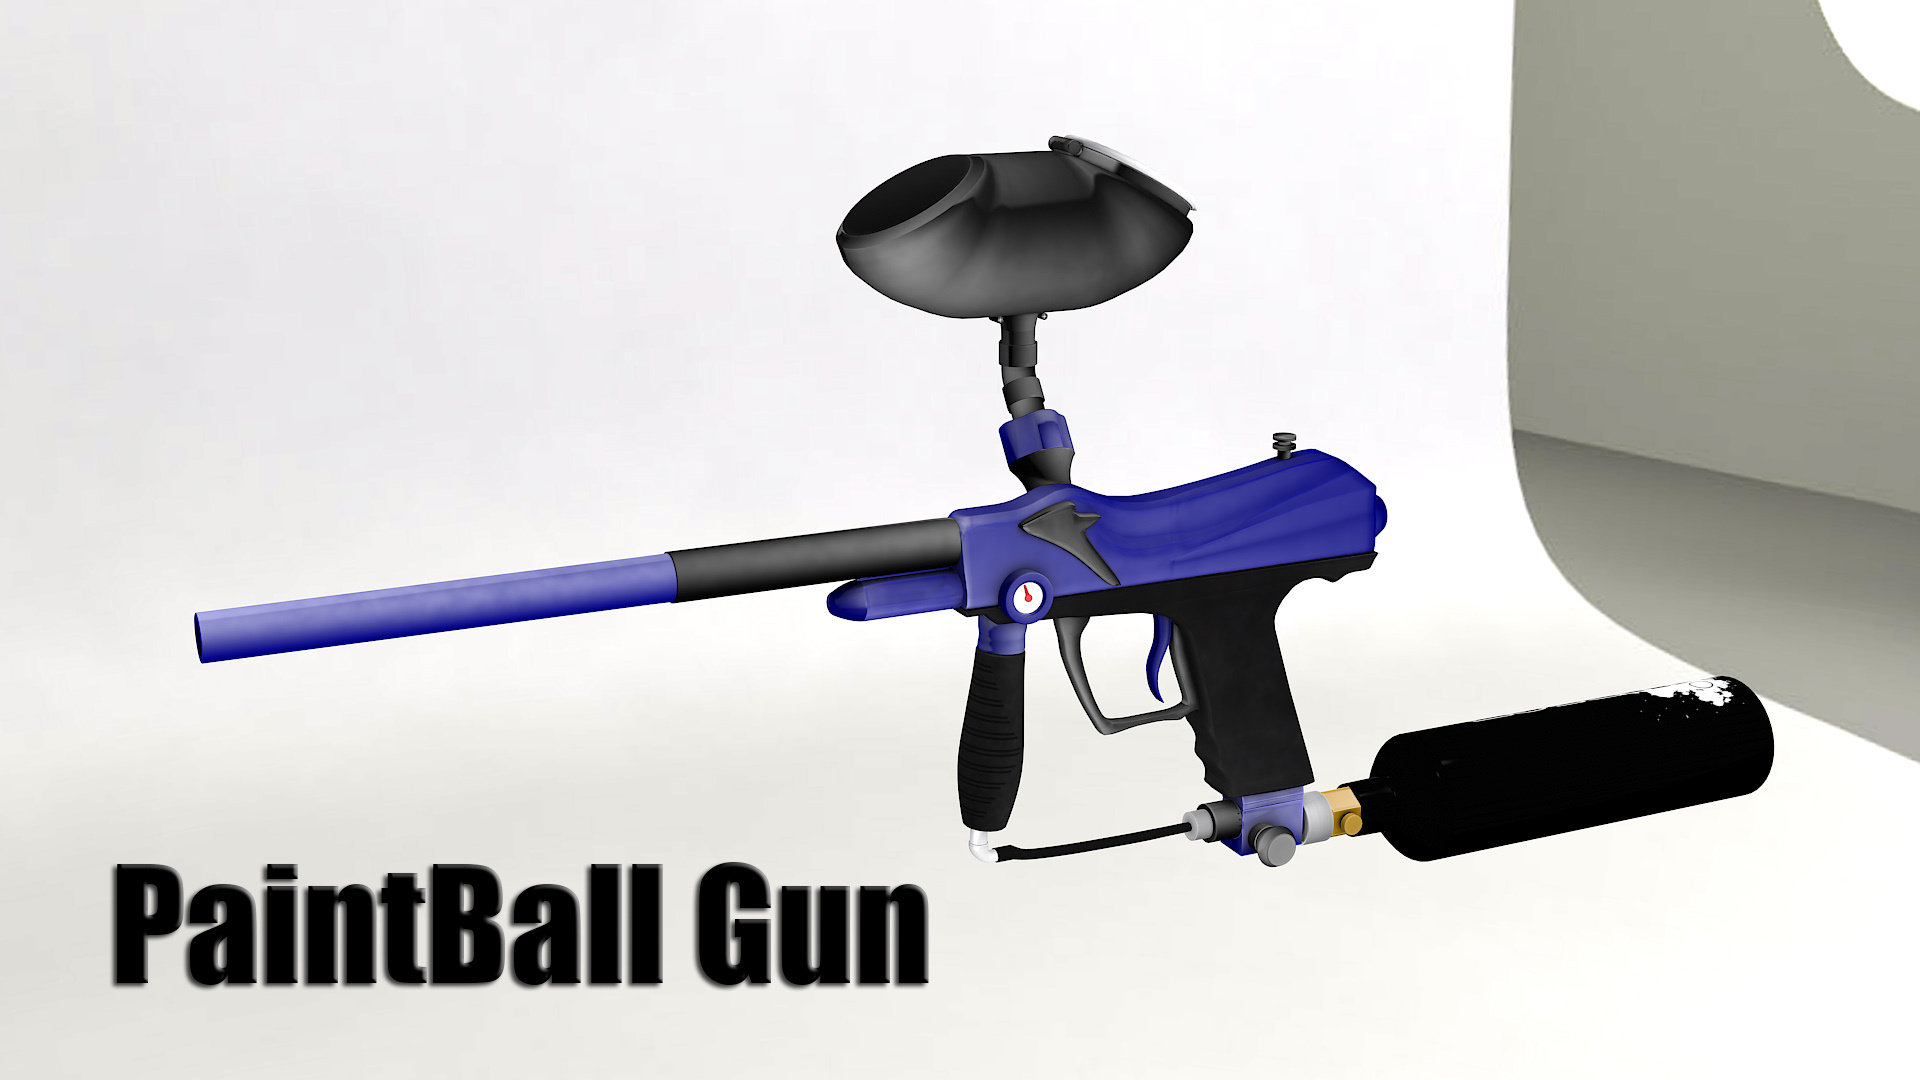 Gta 5 paintball